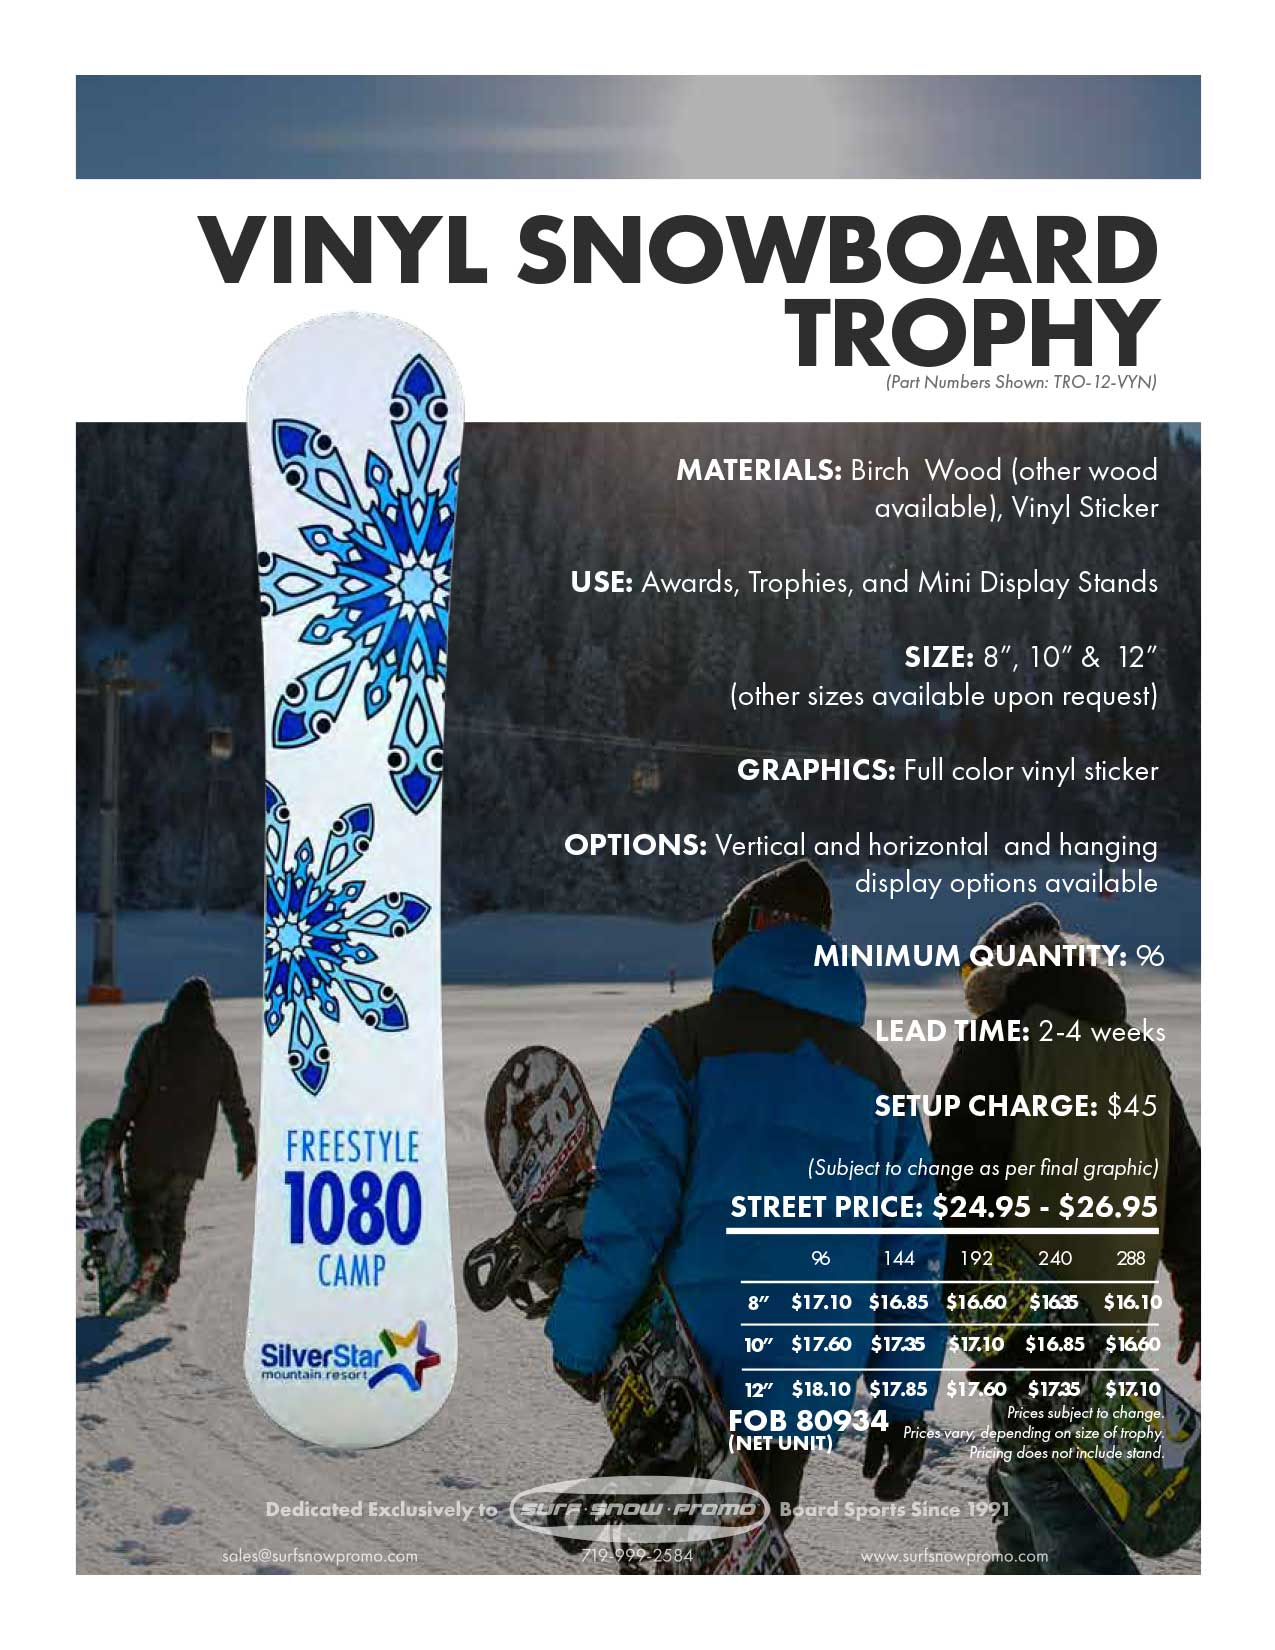 vinyl_snowboard_trophy_sell_sheet_fnl.jpg